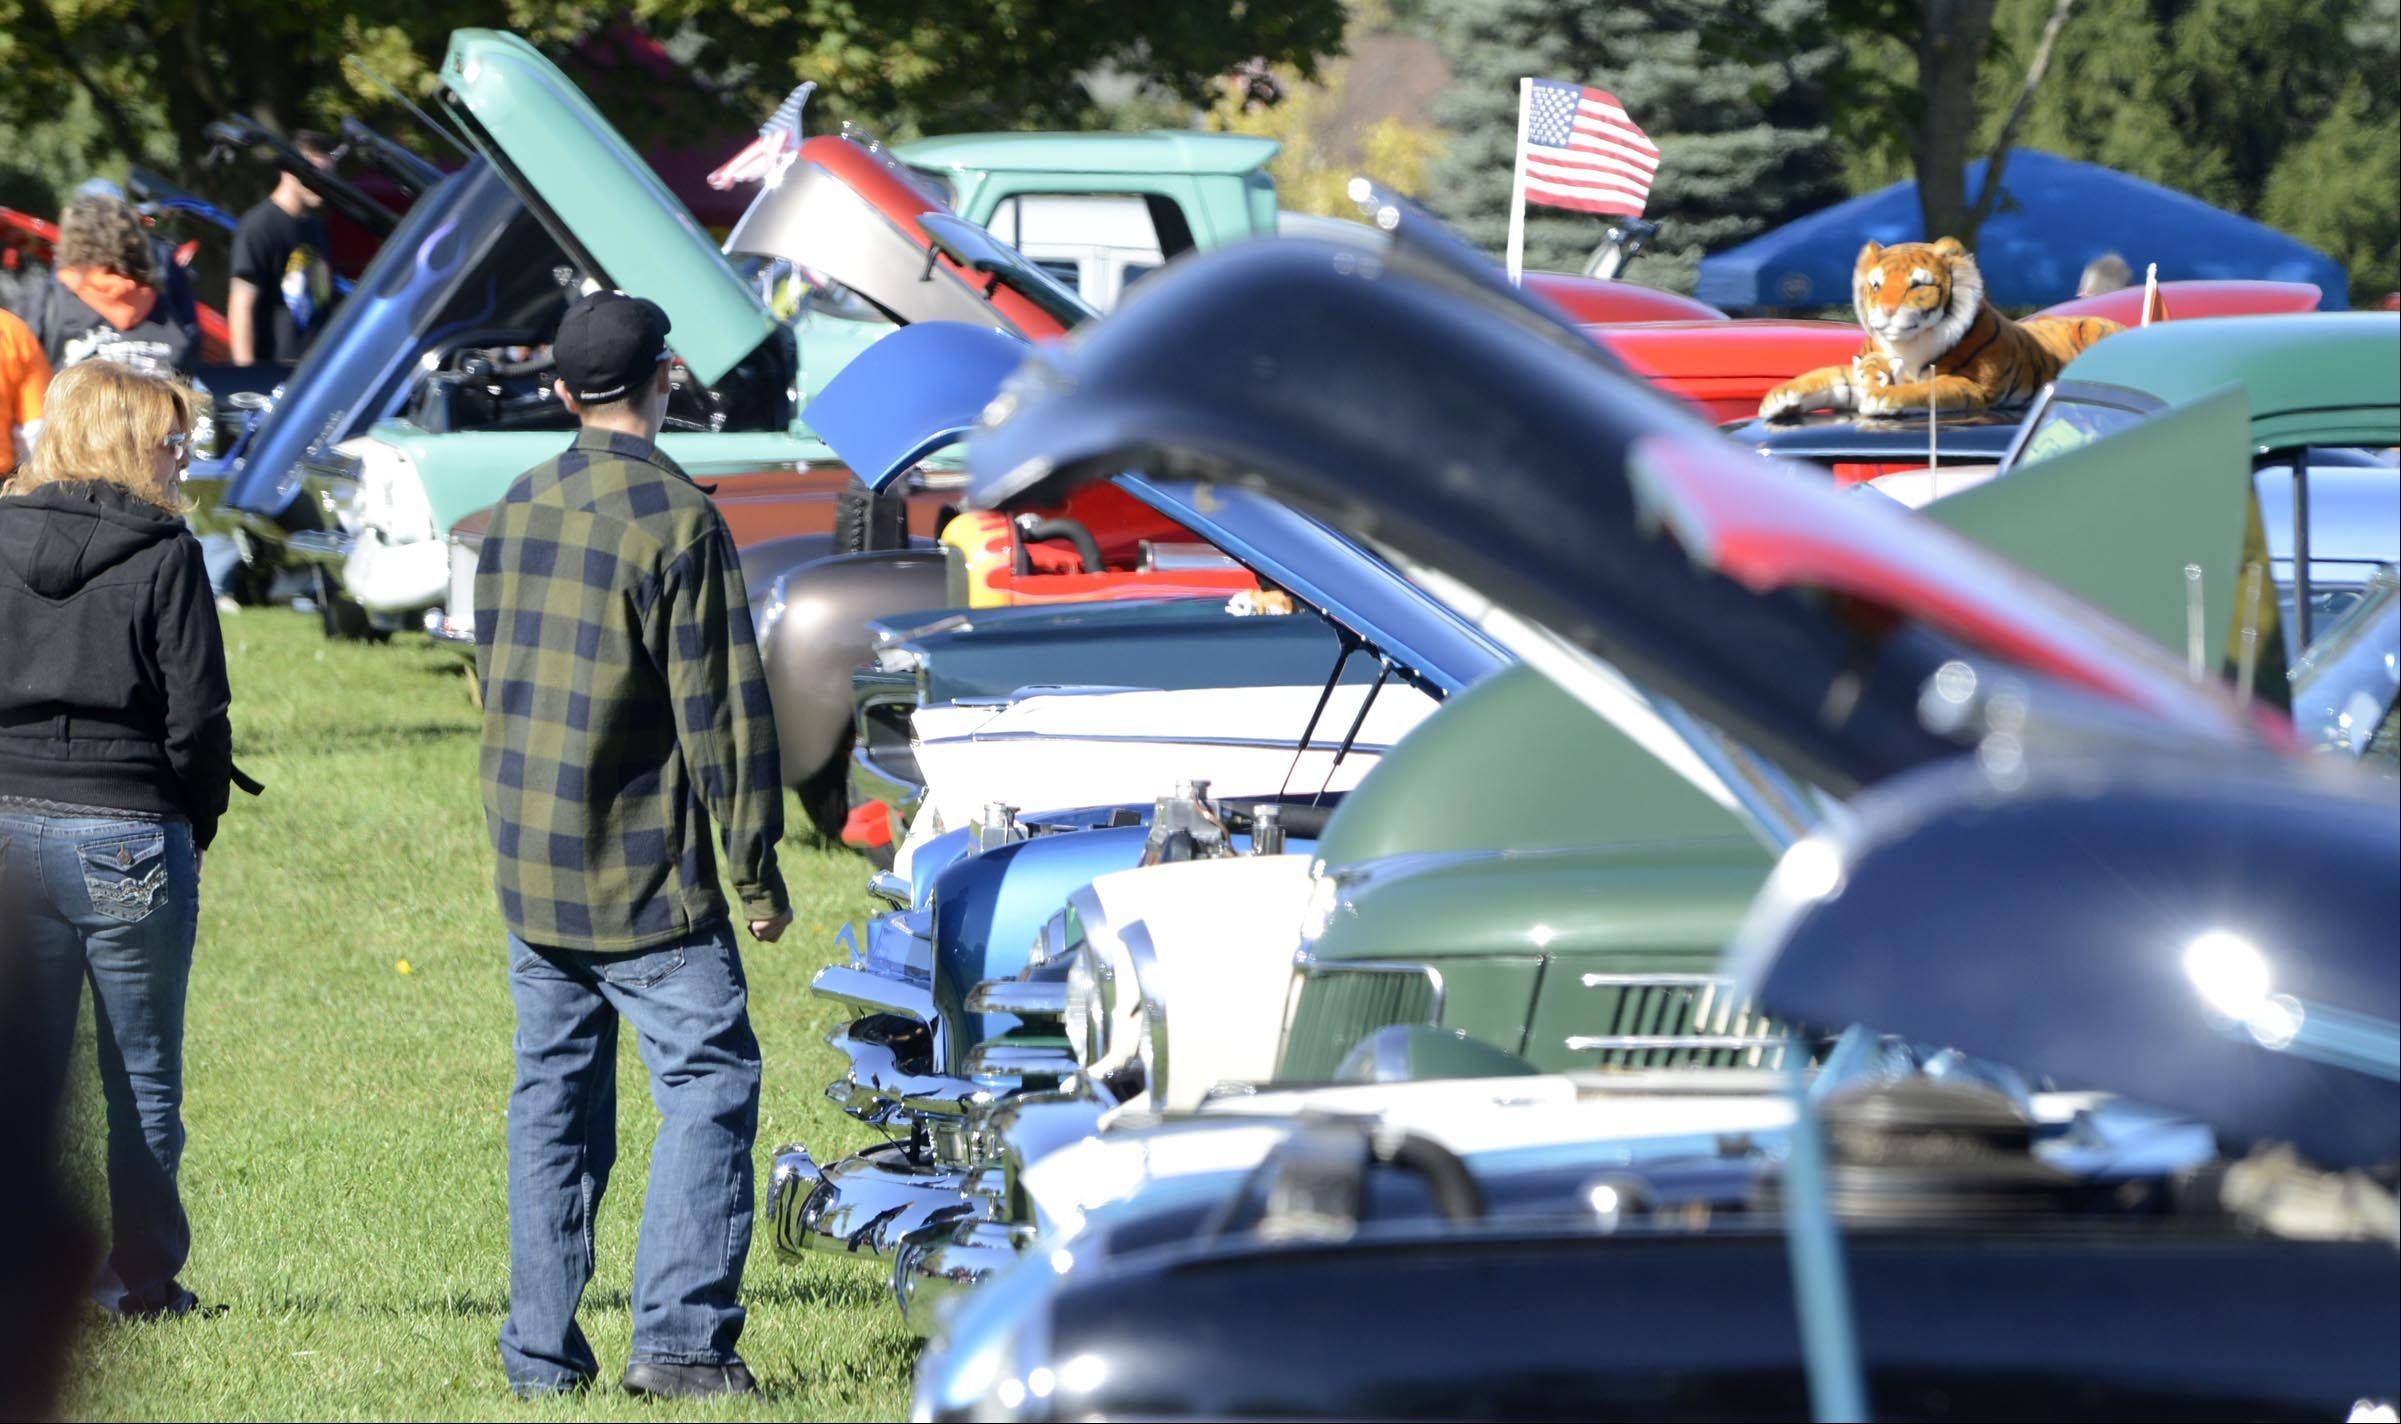 A stuffed tiger keeps an eye on spectators Sunday at the 20th Annual Fall Classic All Wheel Show sponsored by the Elburn Lions Club in Lions Park in Elburn. The event featured an estimated 400 cars on display.